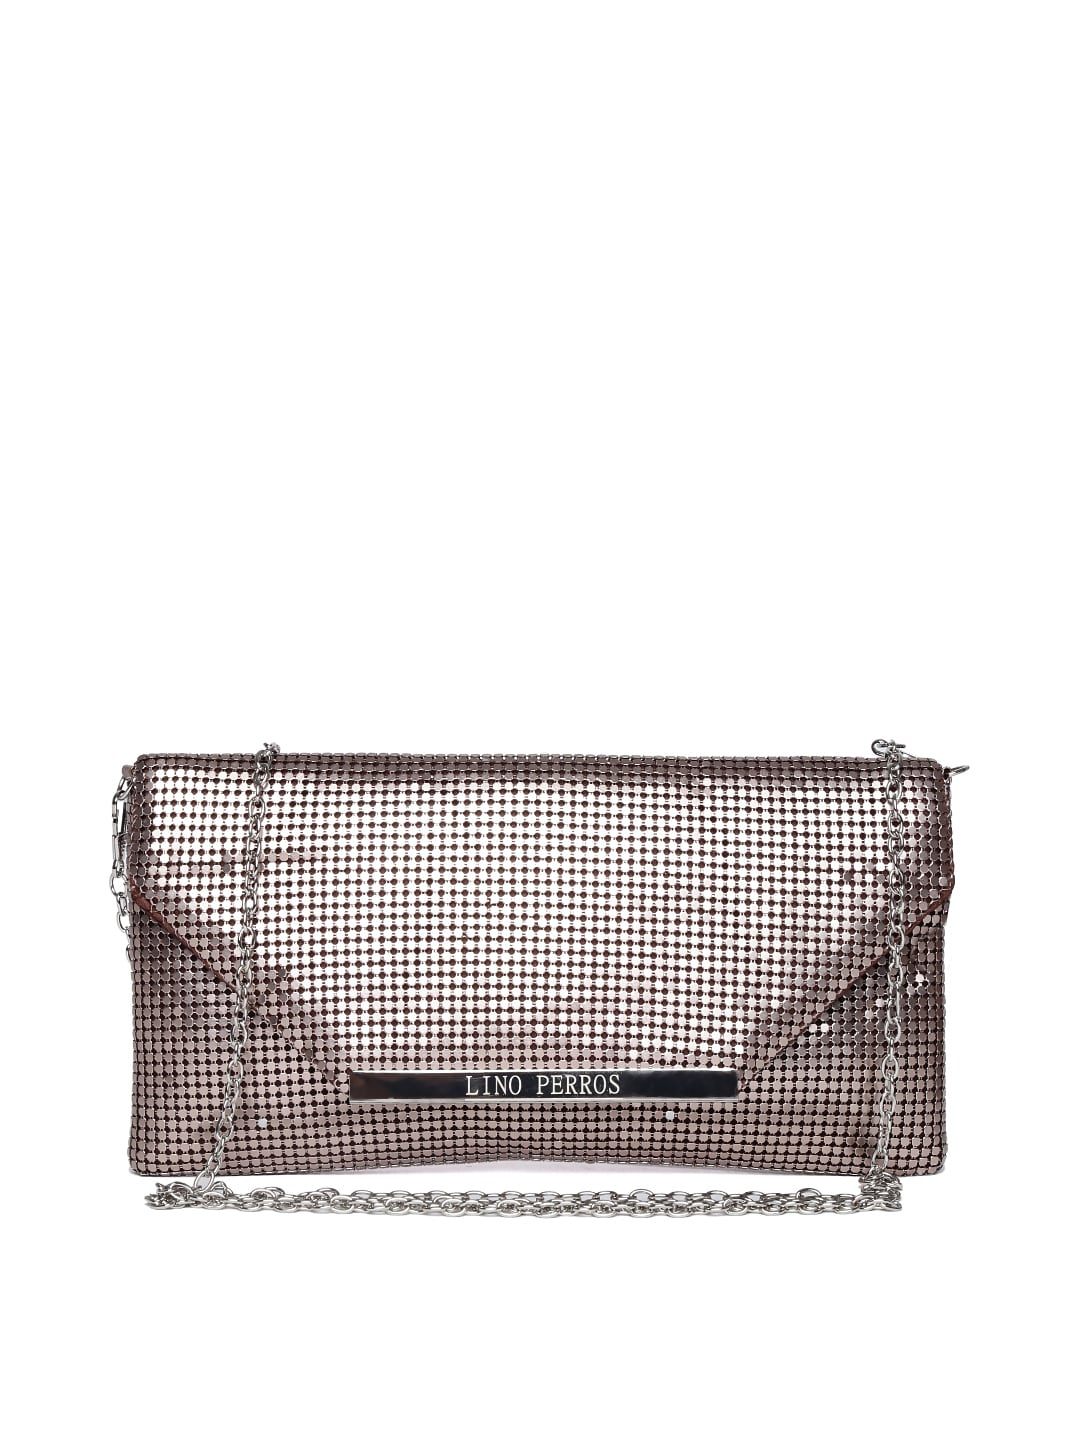 Lisa Haydon for Lino Perros Bronze Dual-Toned Clutch with Chain Strap